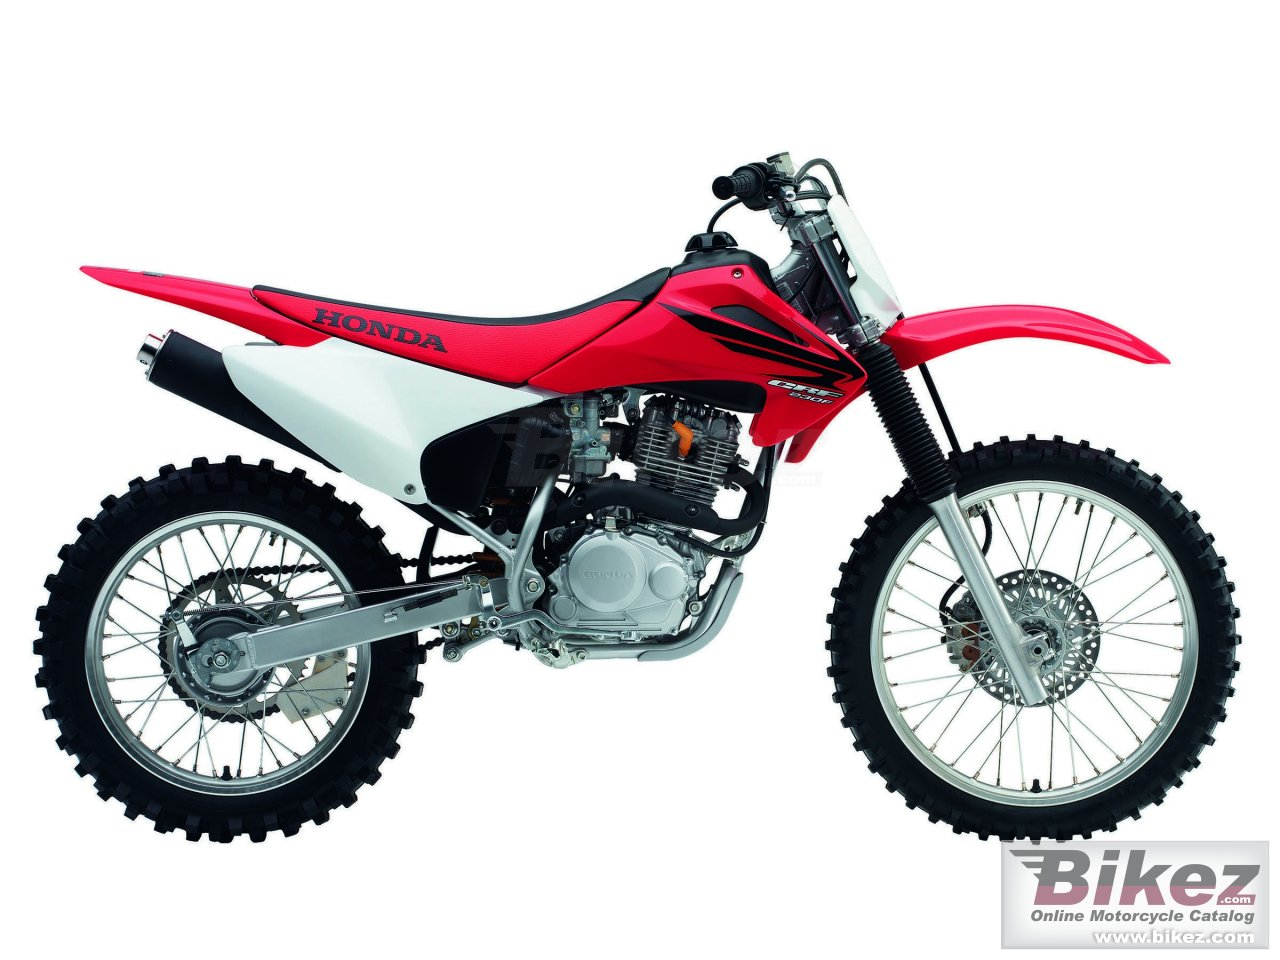 Big Honda crf 230 f picture and wallpaper from Bikez.com